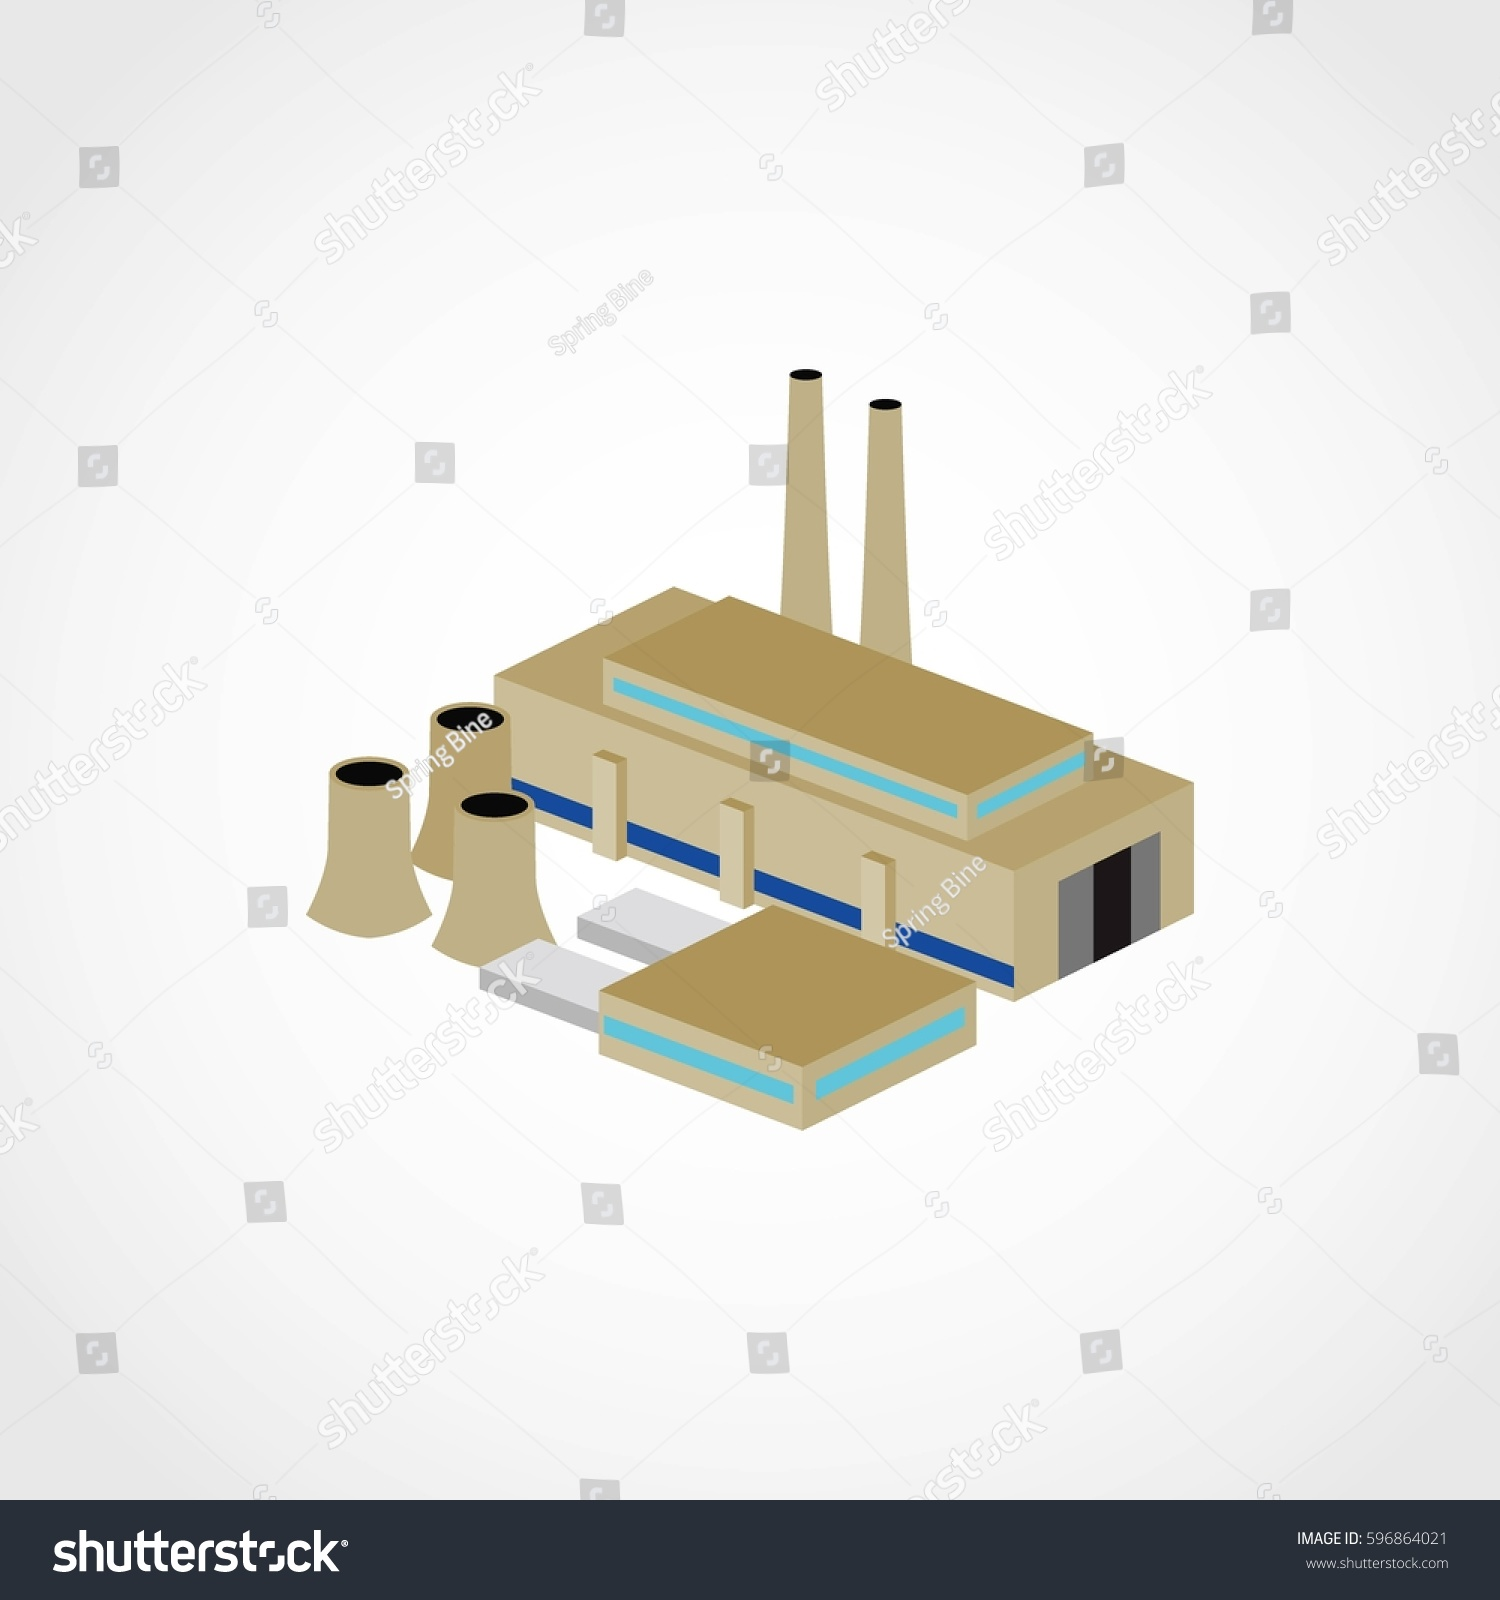 Factory Building 3 D Design Vector Stock Royalty Free Diagram For Wireless Routers 3d